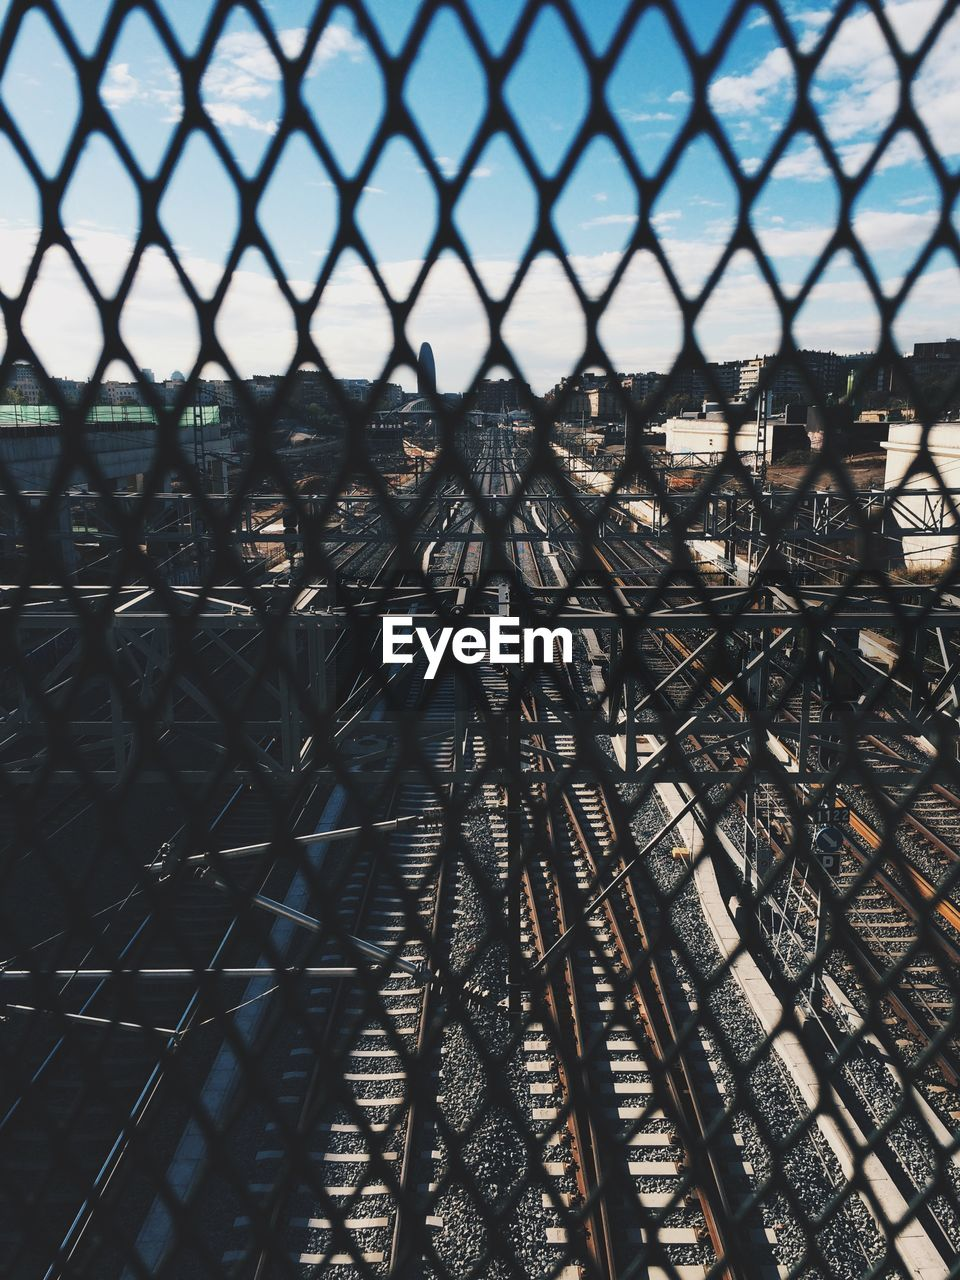 Full Frame Shot Of Railroad Track Seen Through Chainlink Fence